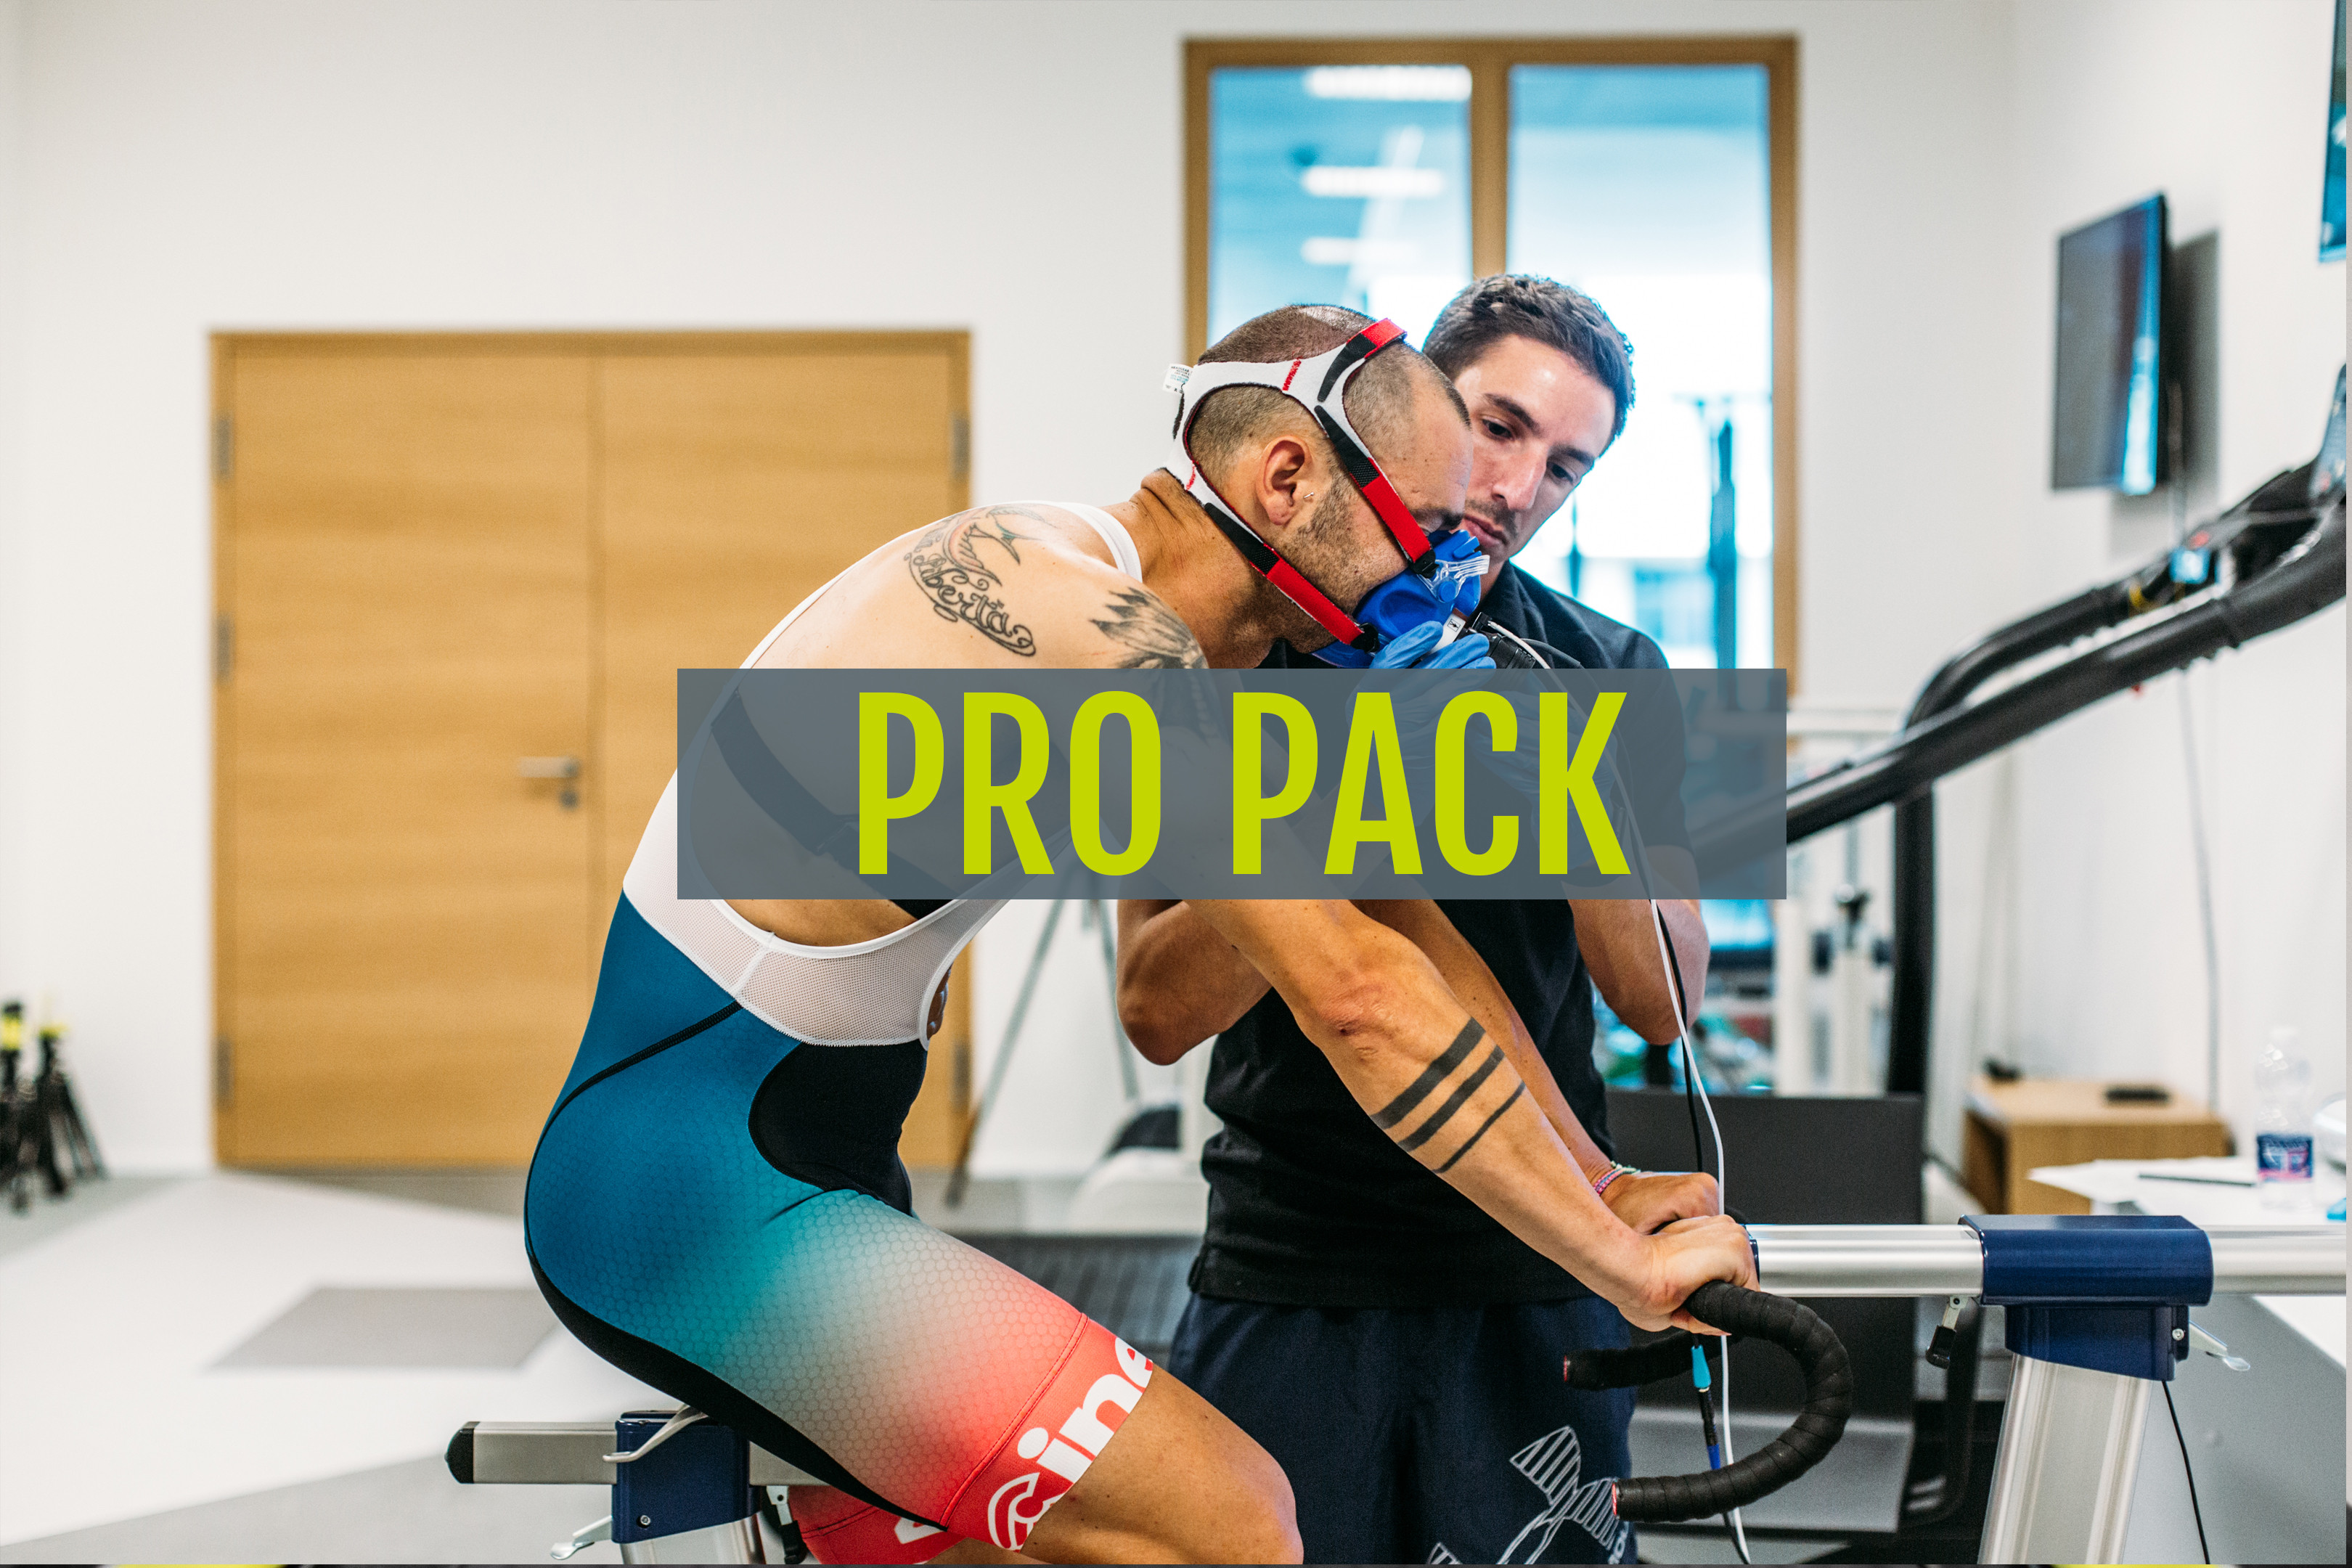 Ciclismo - Pro Pack